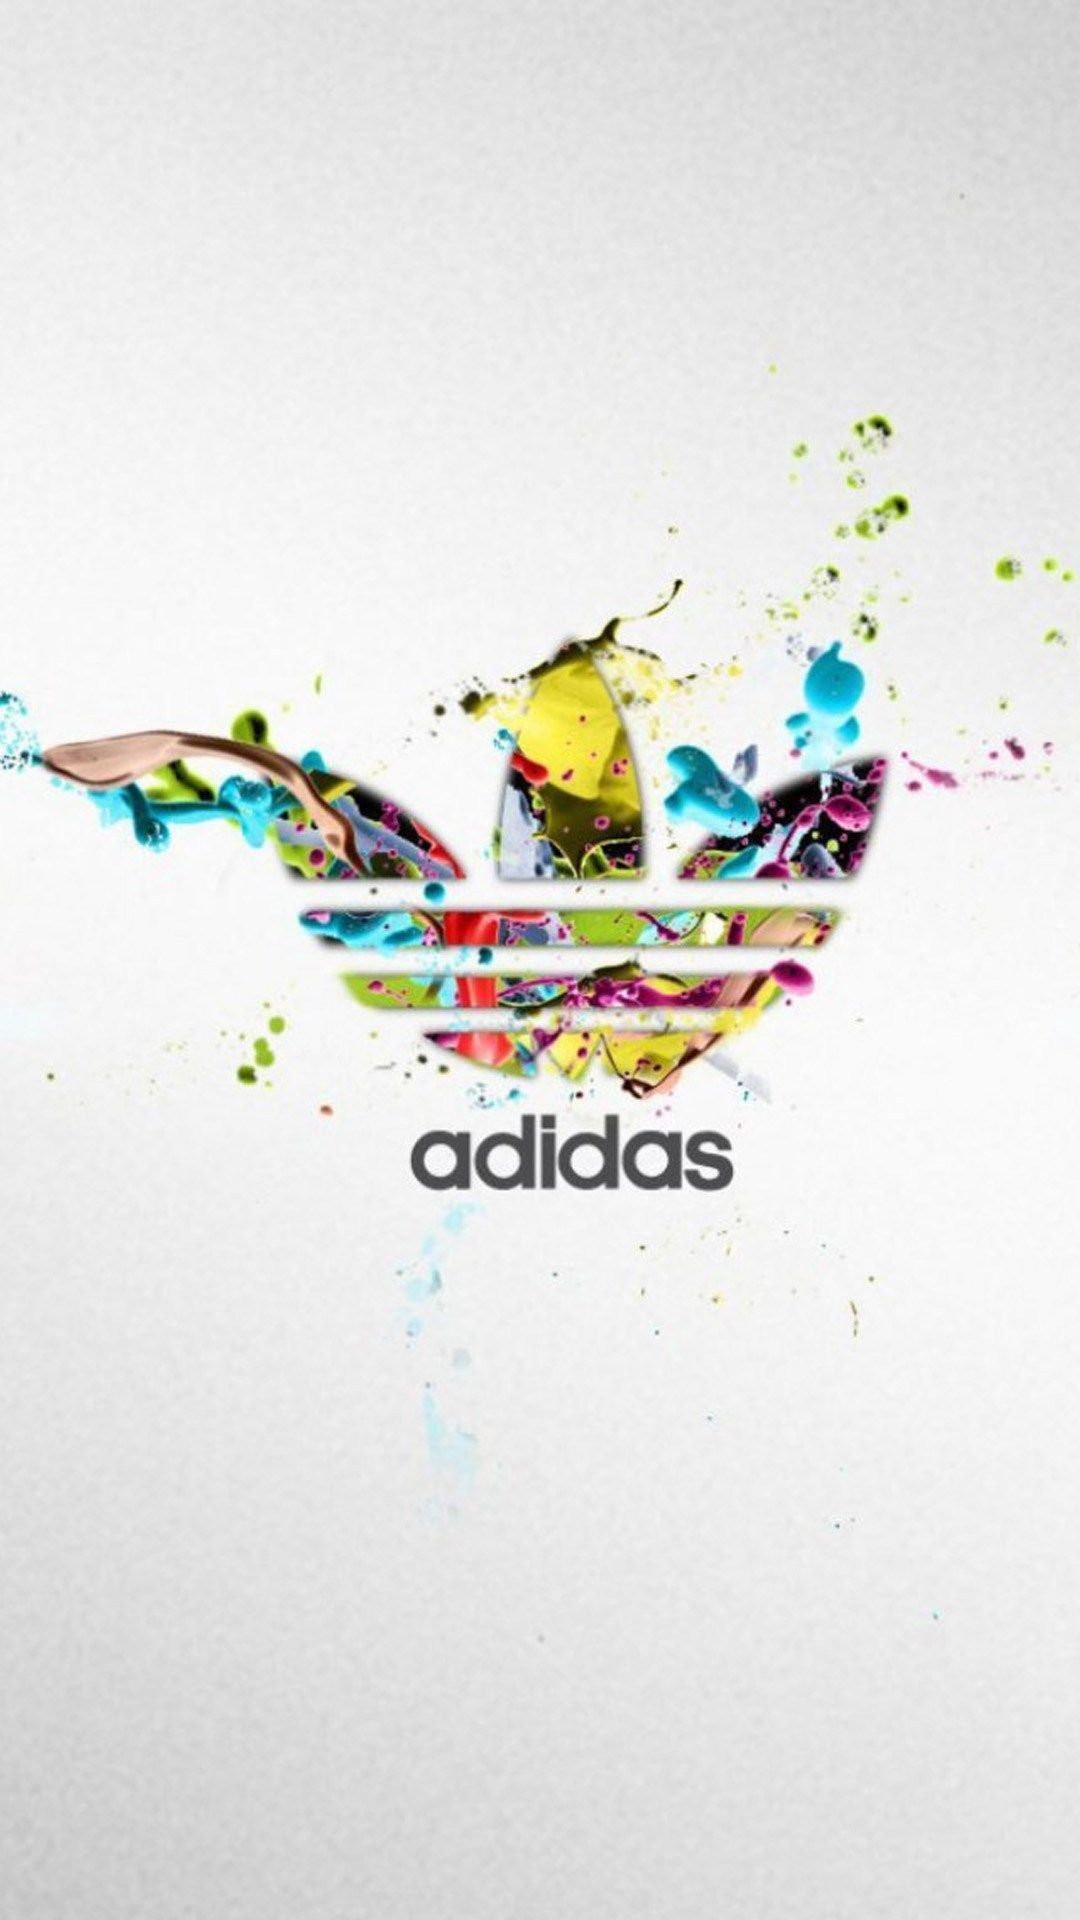 Adidas Iphone Wallpapers Top Free Adidas Iphone Backgrounds Wallpaperaccess